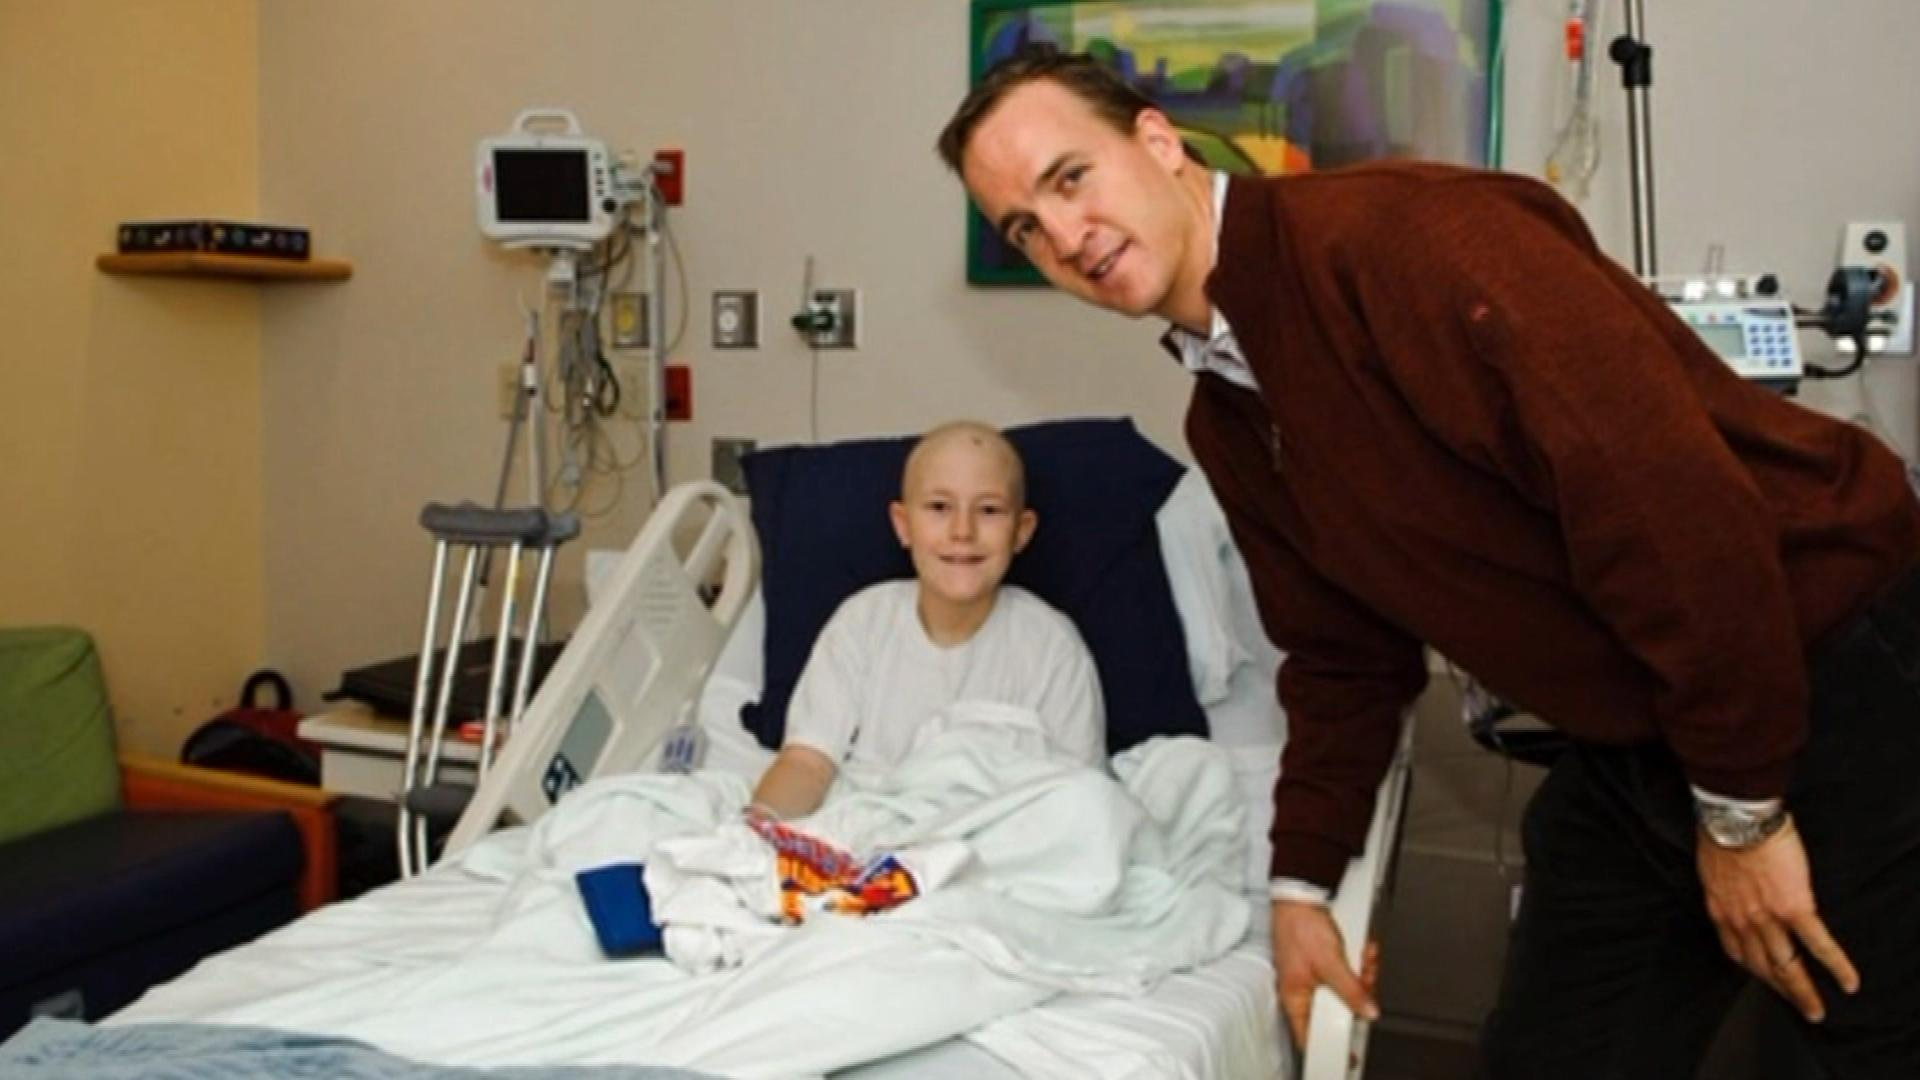 Peyton Manning at the hospital that bears his name (credit: CBS)